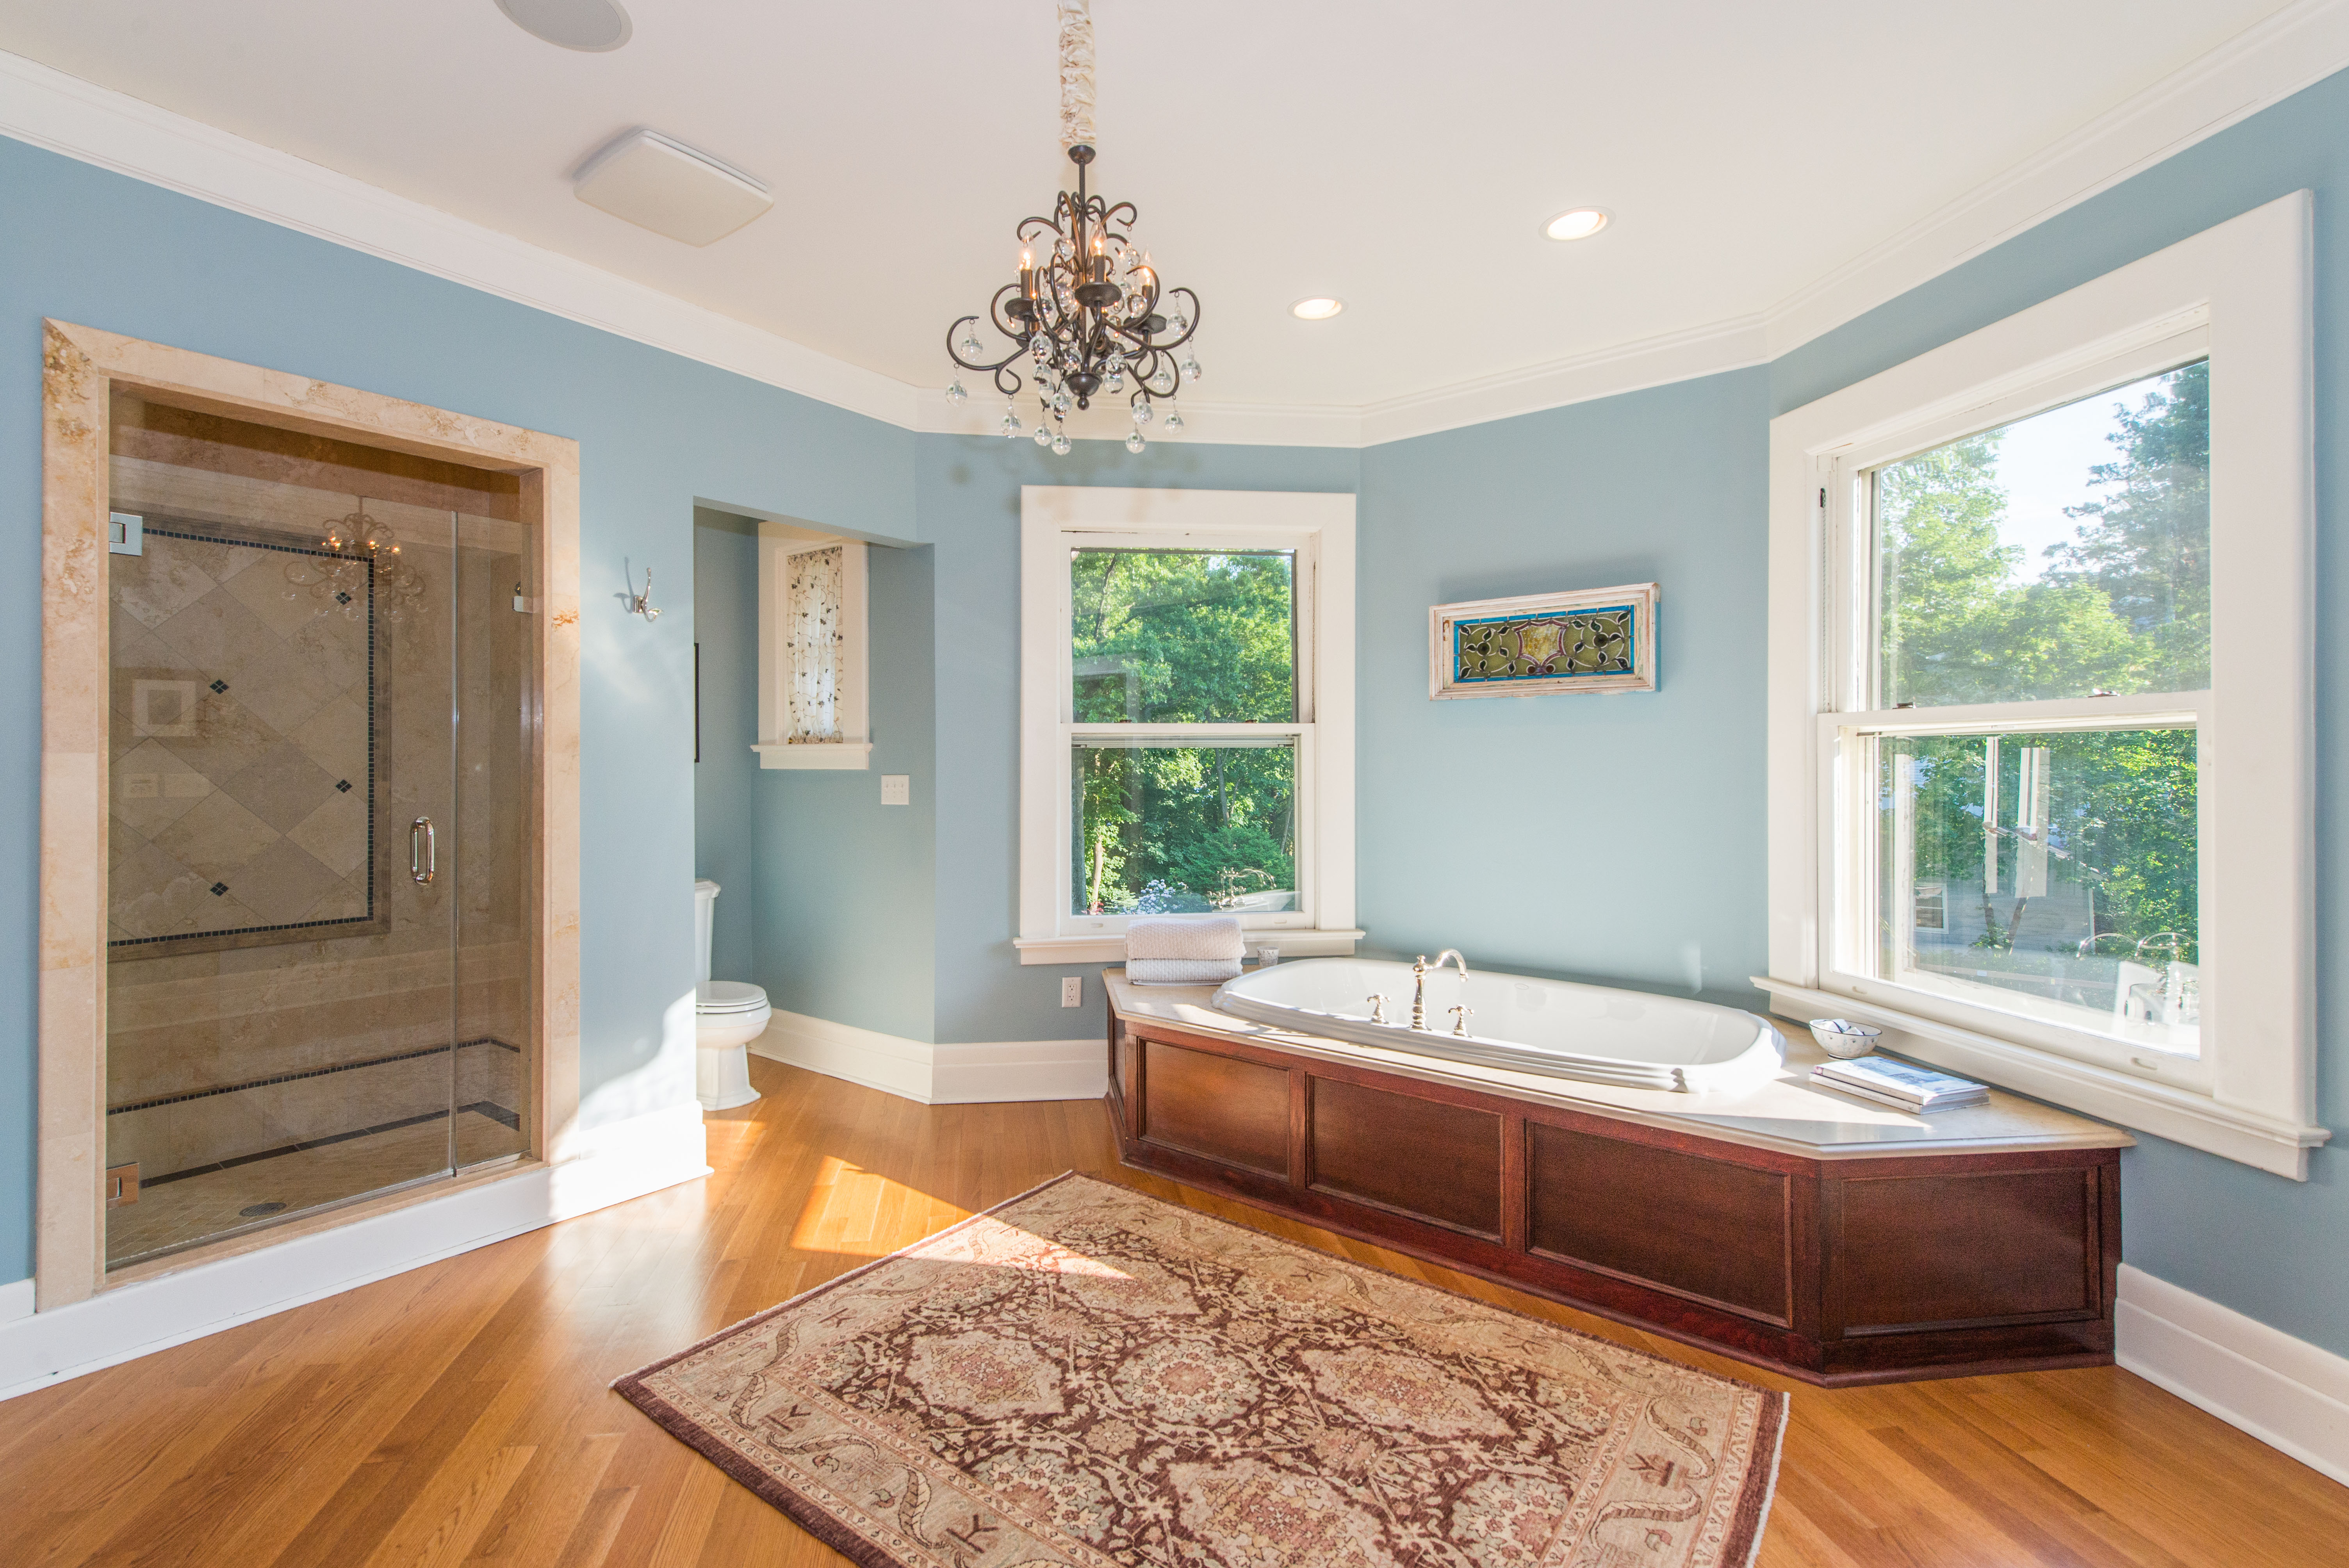 Includes A True Master Suite With His U0026 Hers Walk In Closets. An Acre Of  Bucolic Grounds May Lull Y